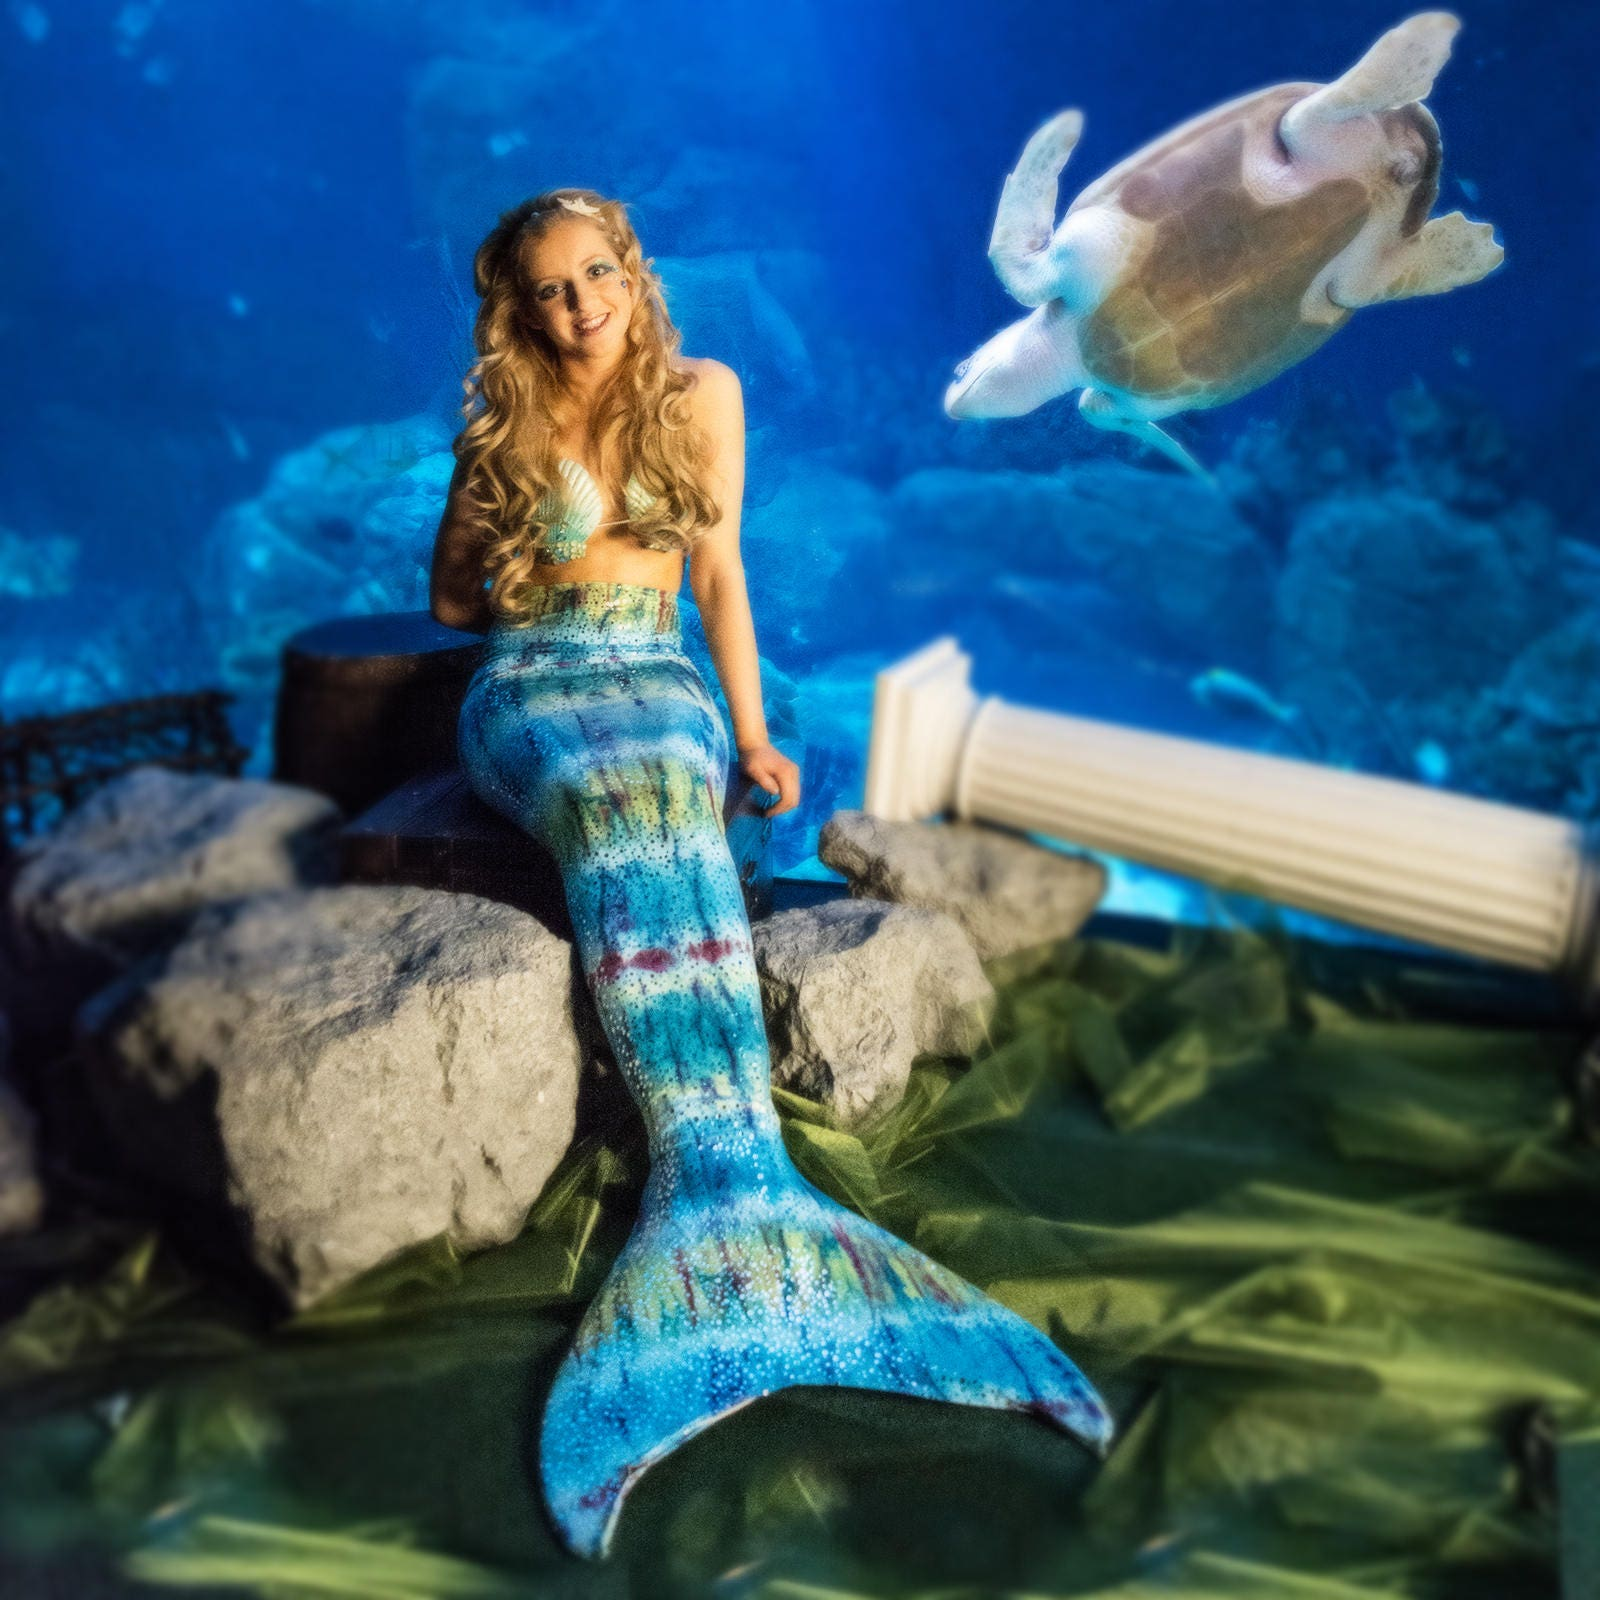 Swimmable Mermaid Tail Includes Olympic Monofin 2 Piece